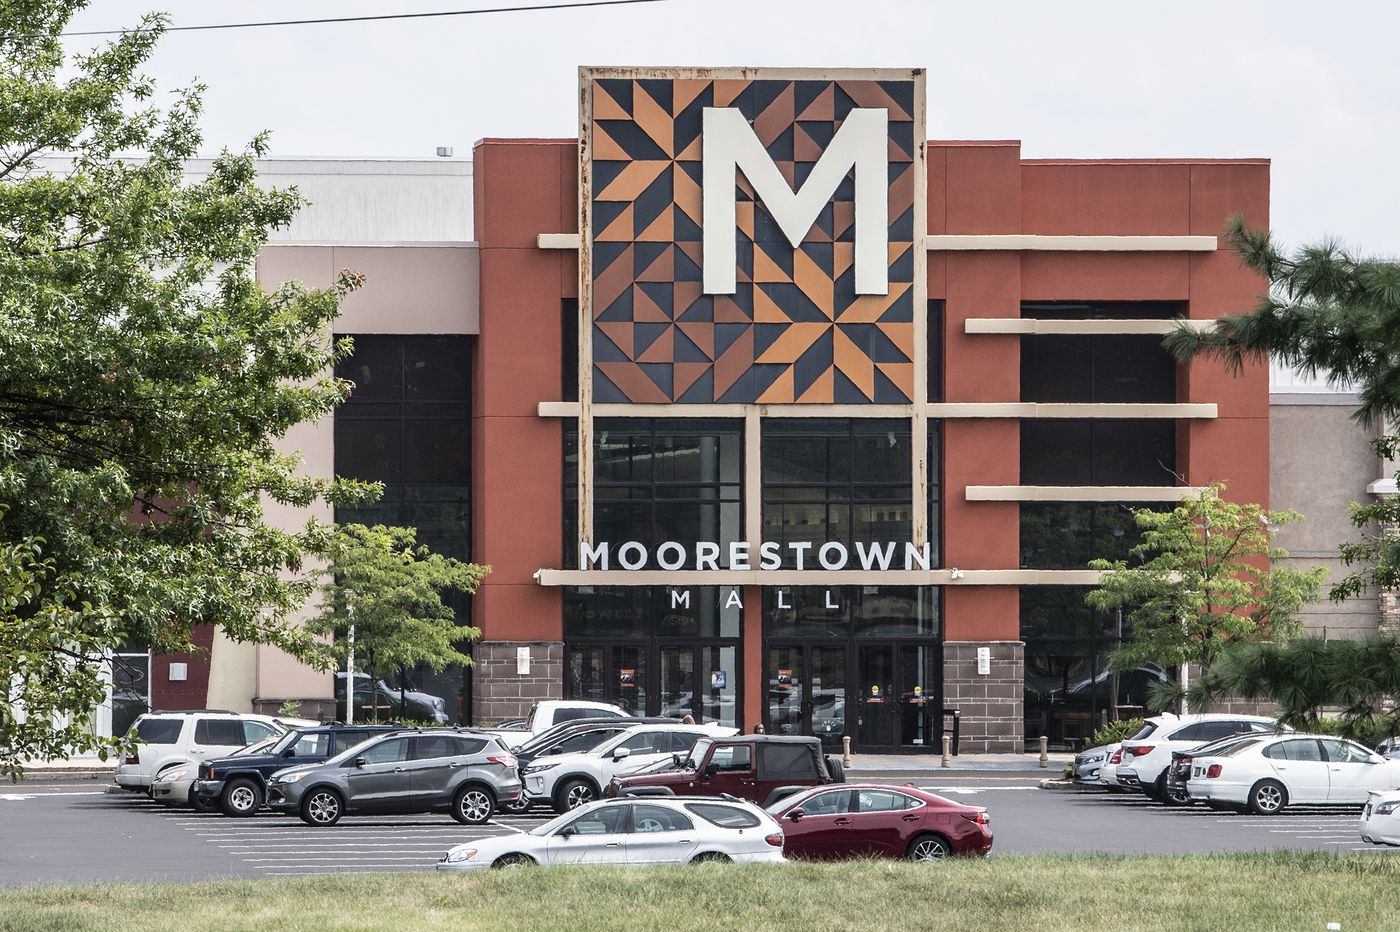 As the Moorestown Mall struggles, residents will pay higher taxes because of its losses